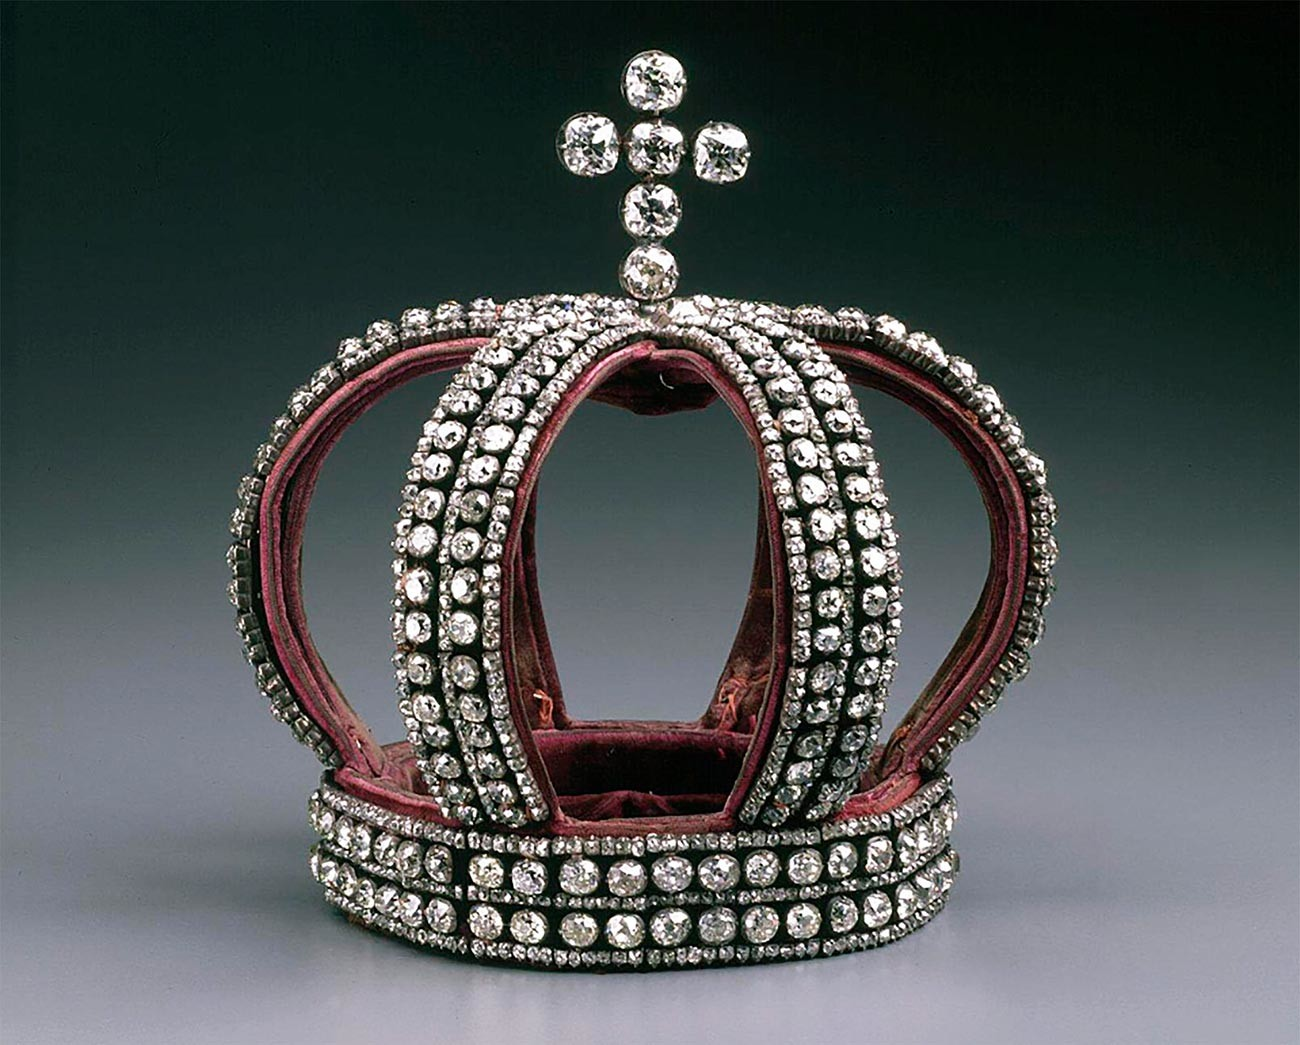 The imperial crown of the Romanovs